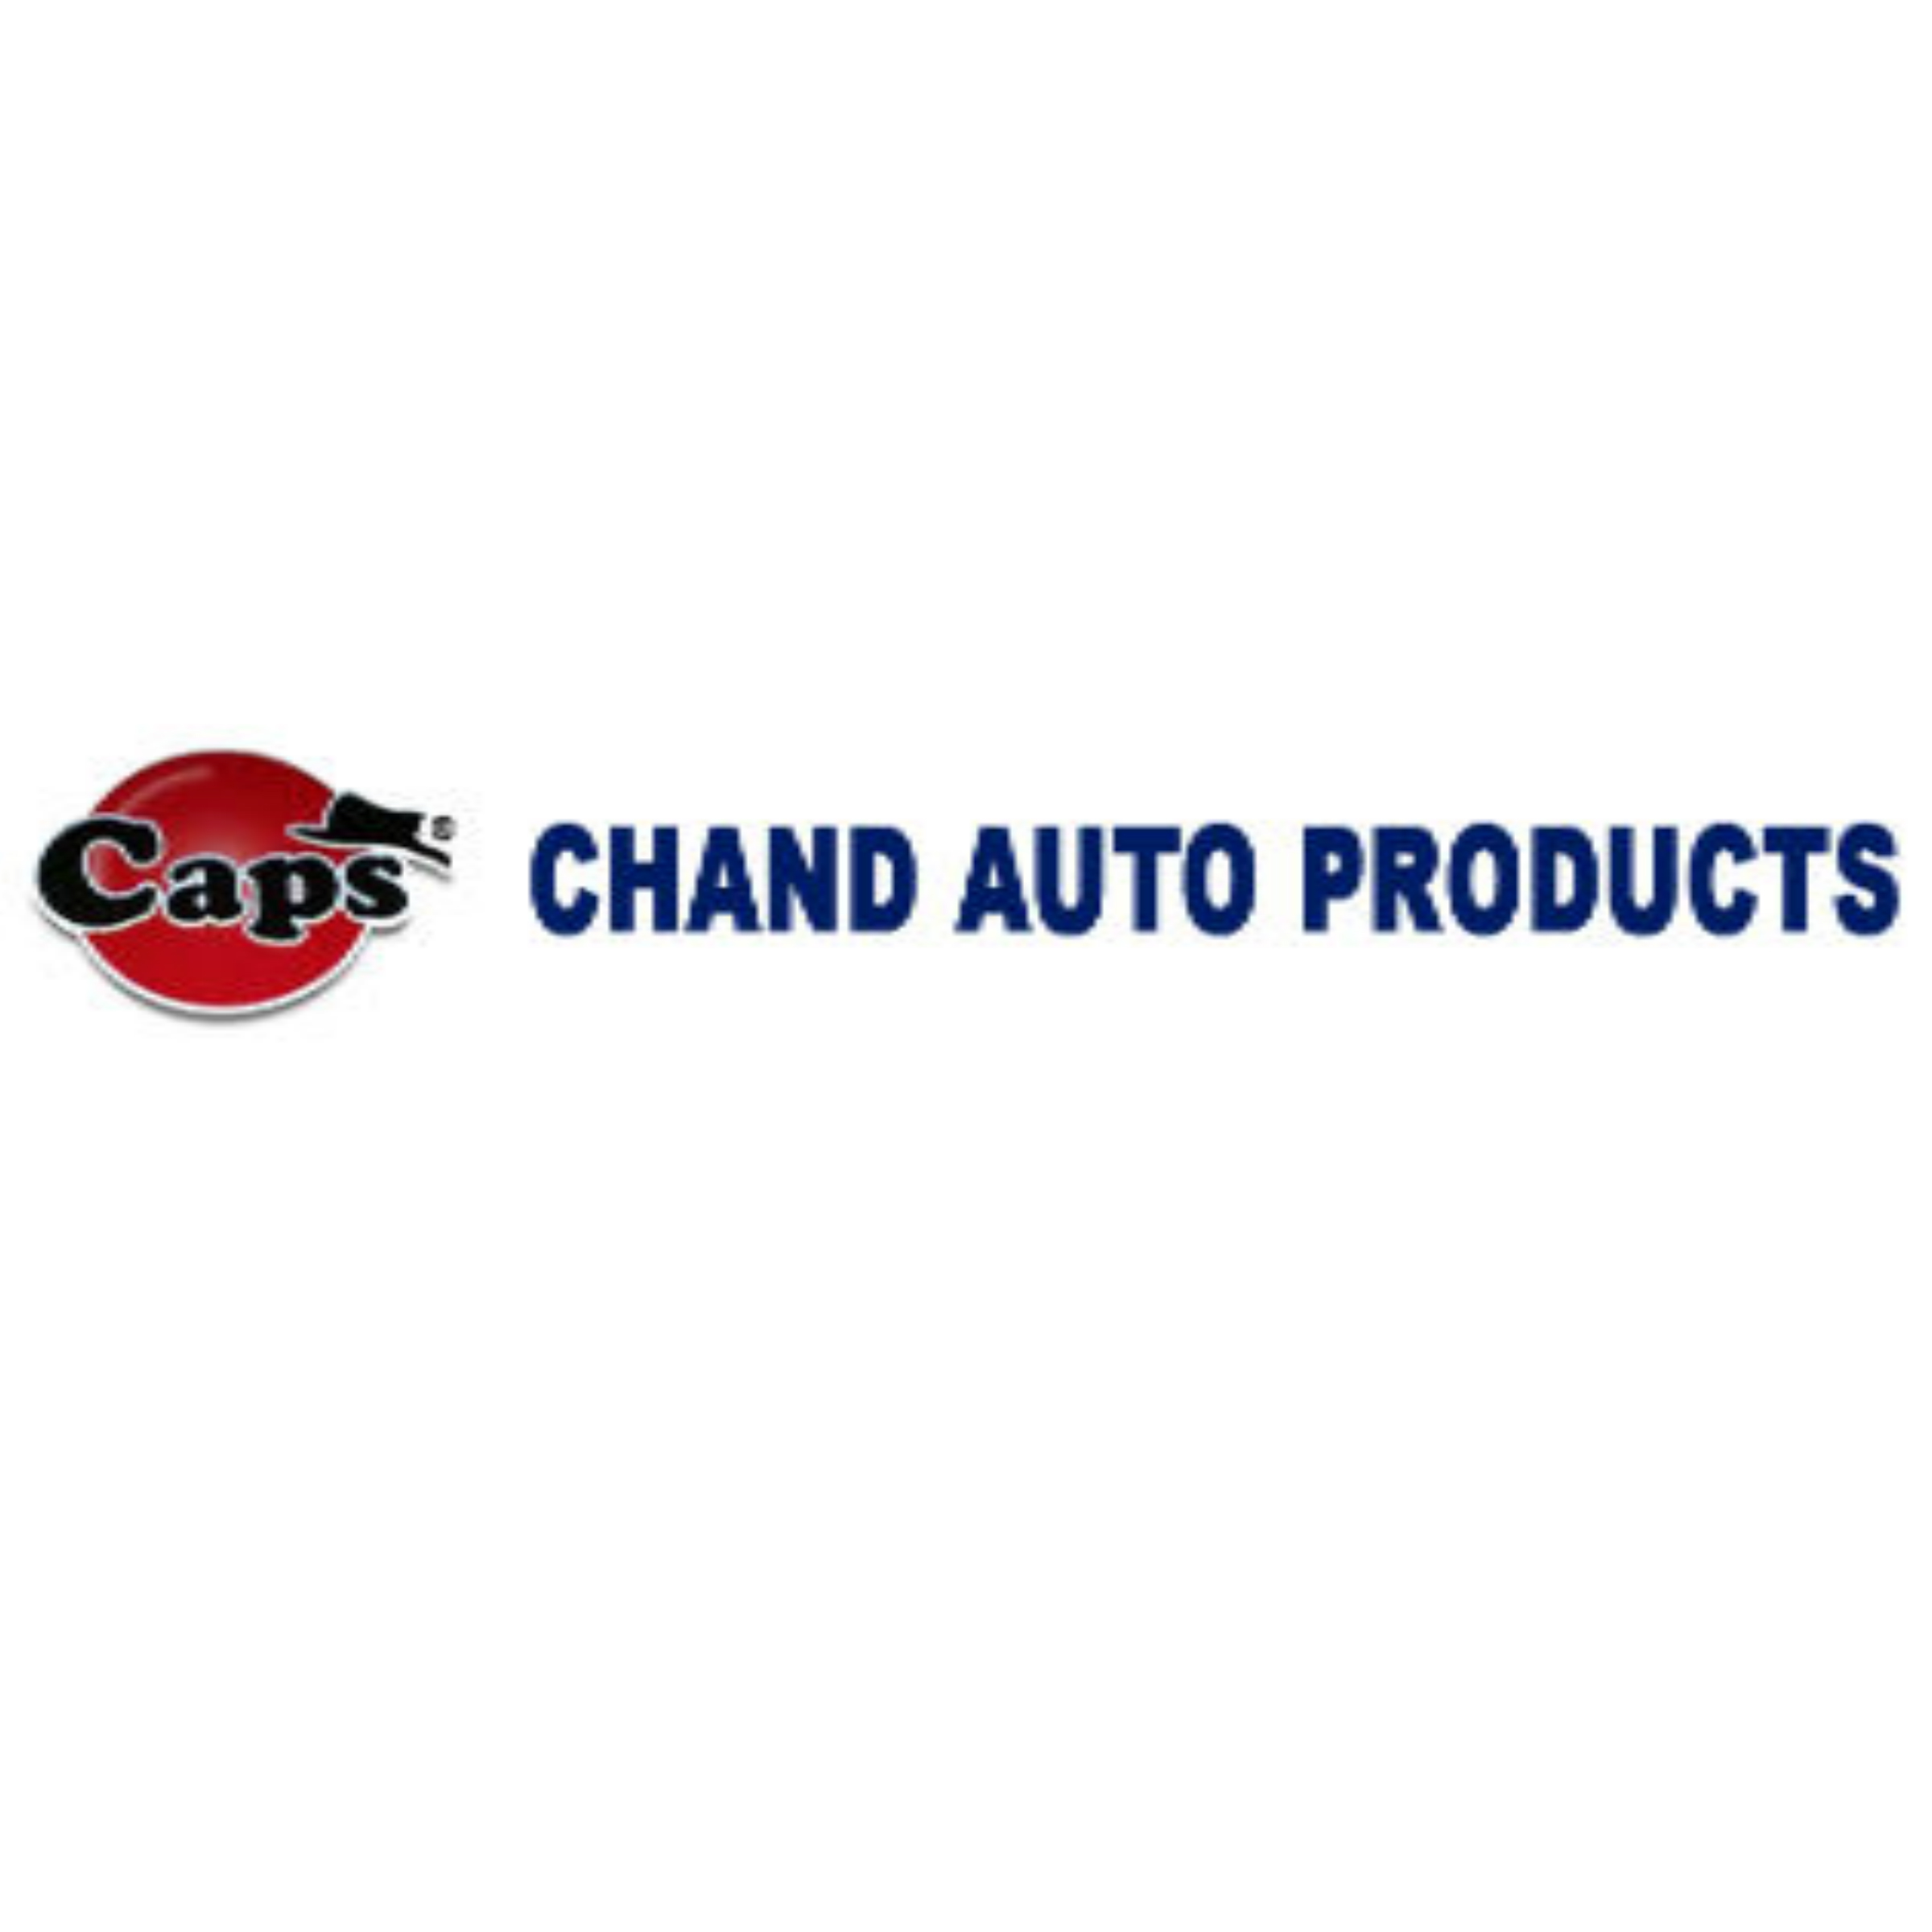 Chand Auto Products